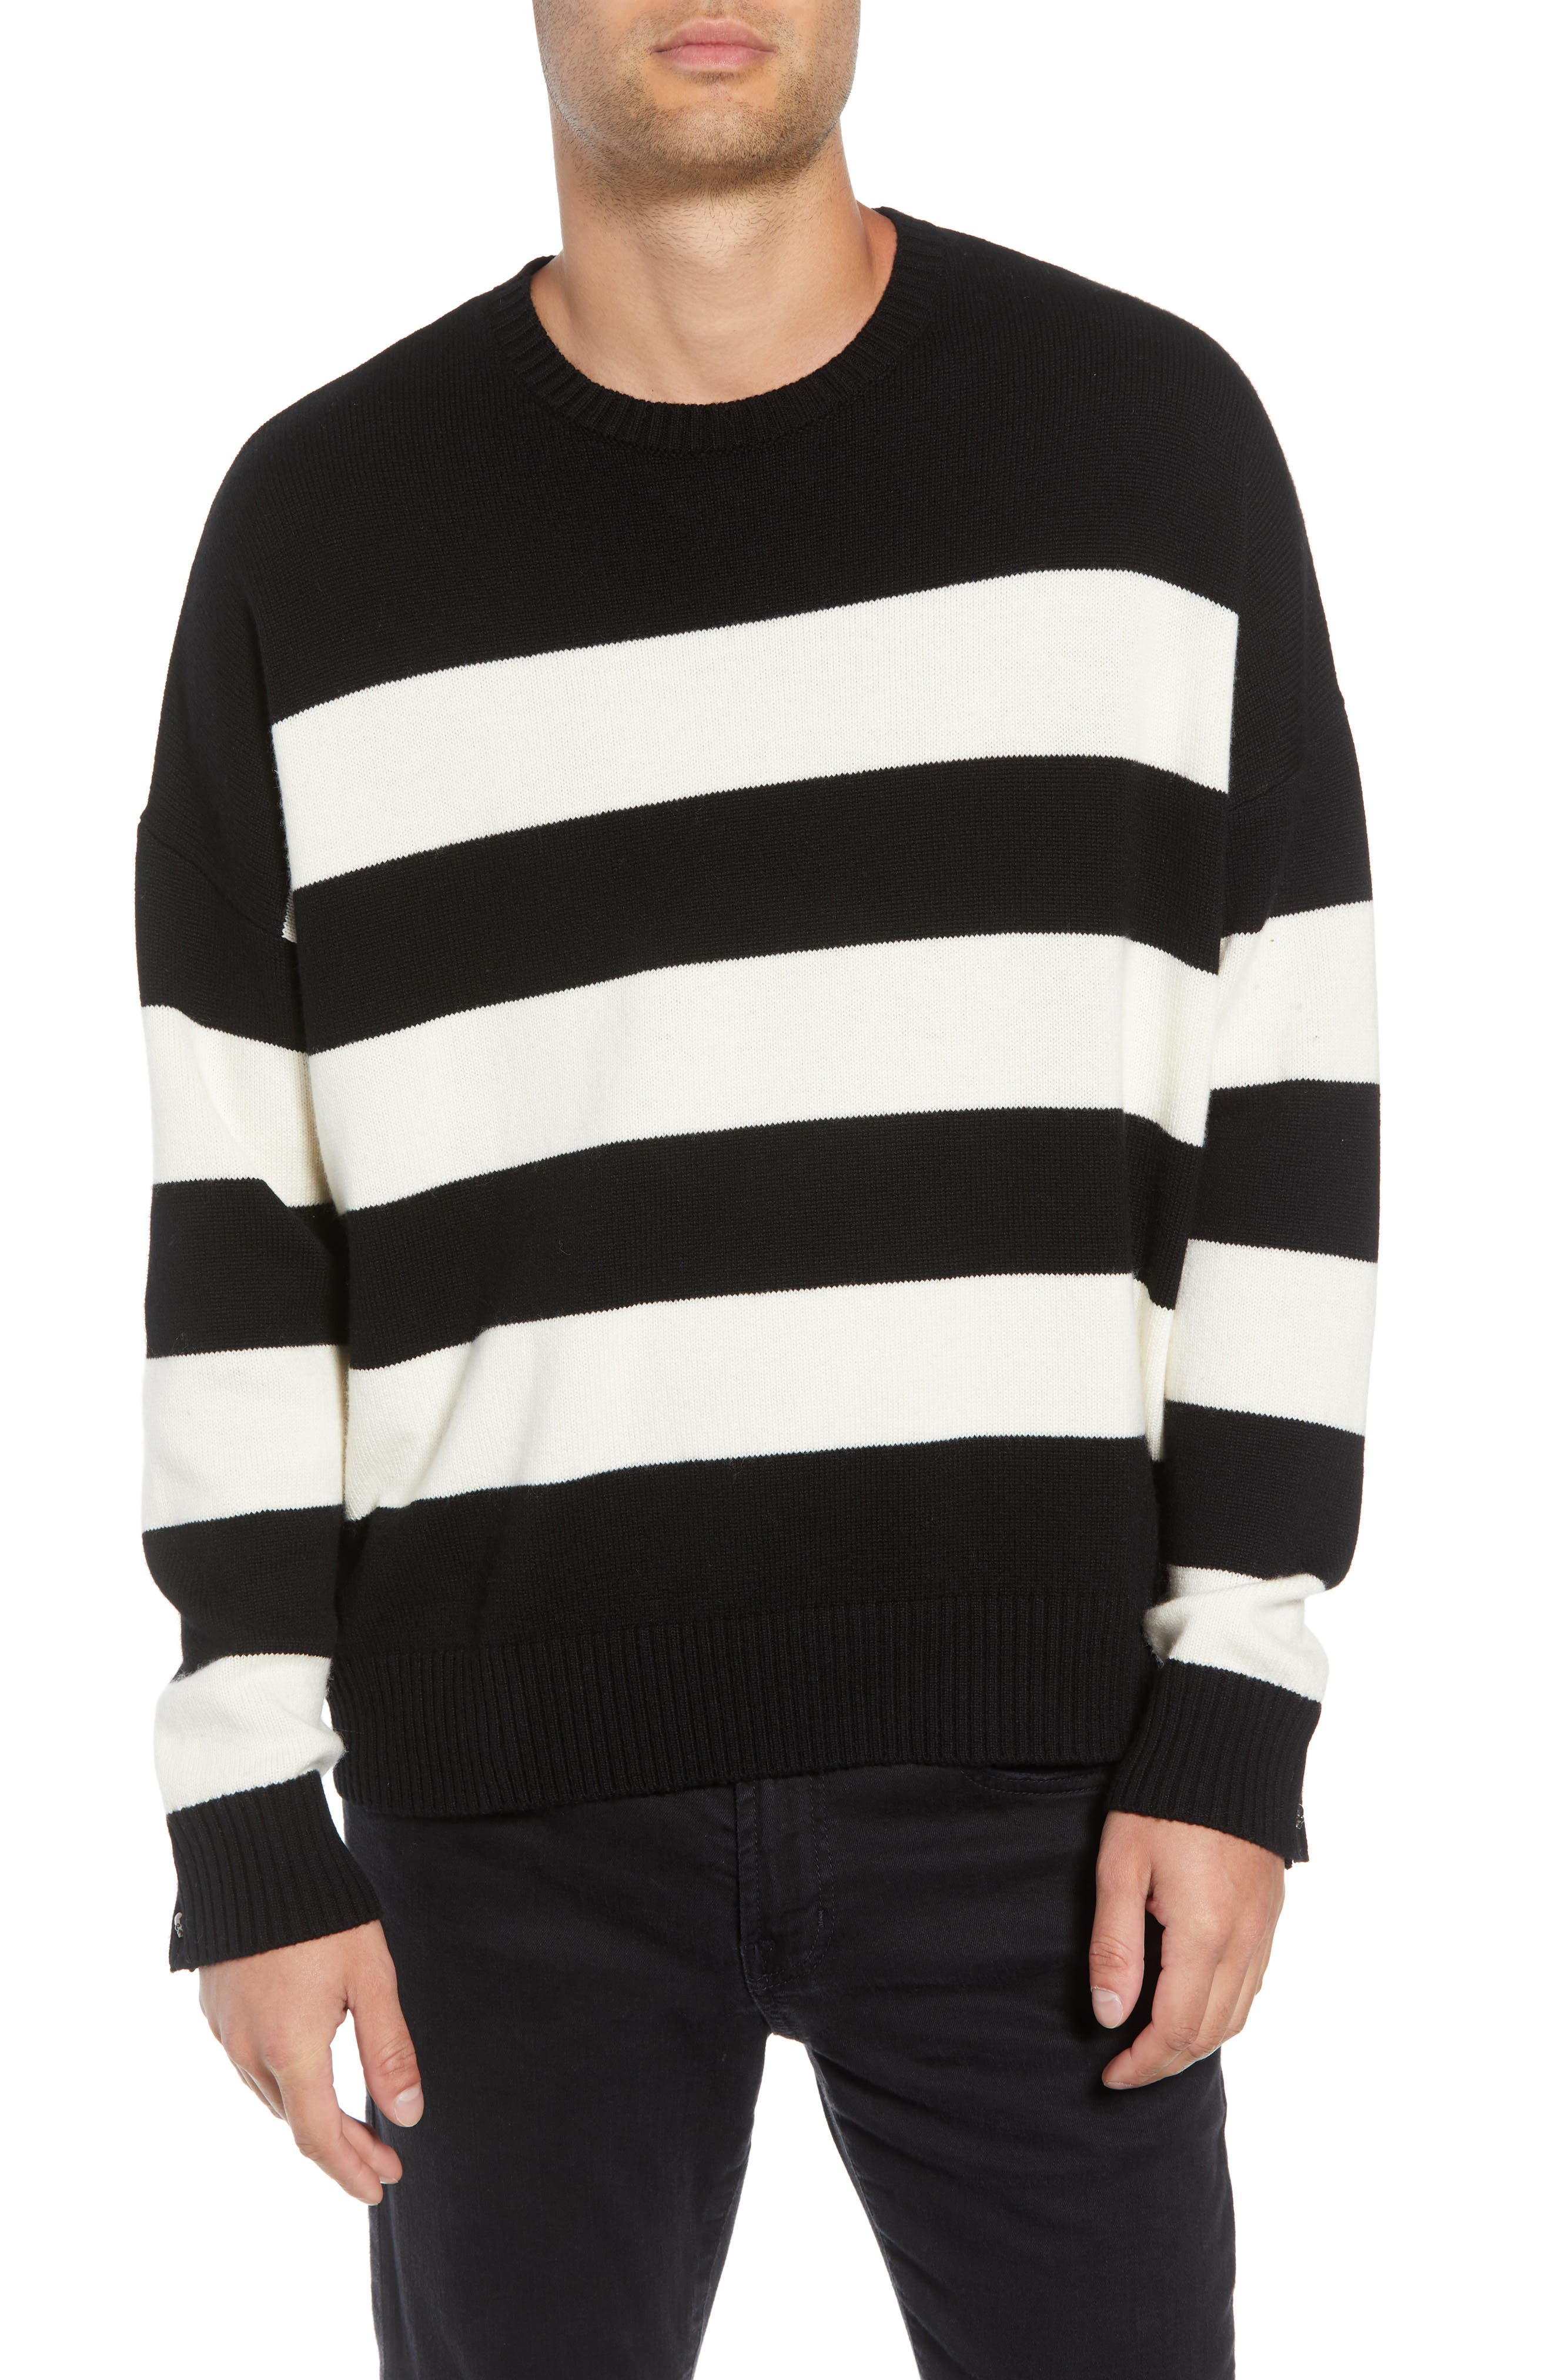 THE KOOPLES Classic Fit Striped Sweater, Main, color, 001